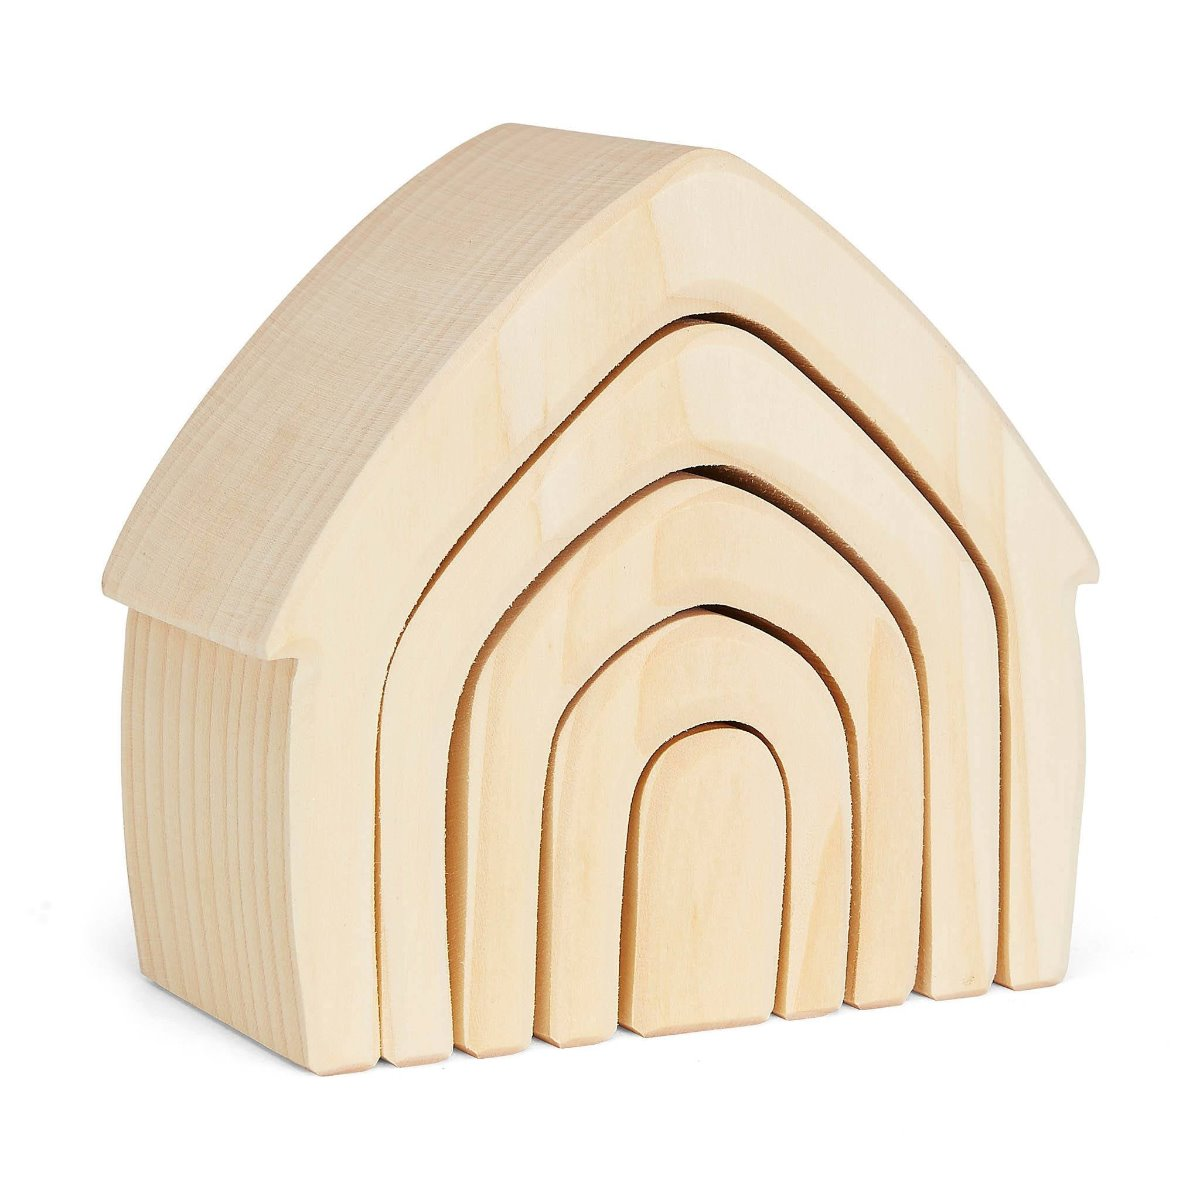 Grimms Wooden Natural stacking House at Little Sprout